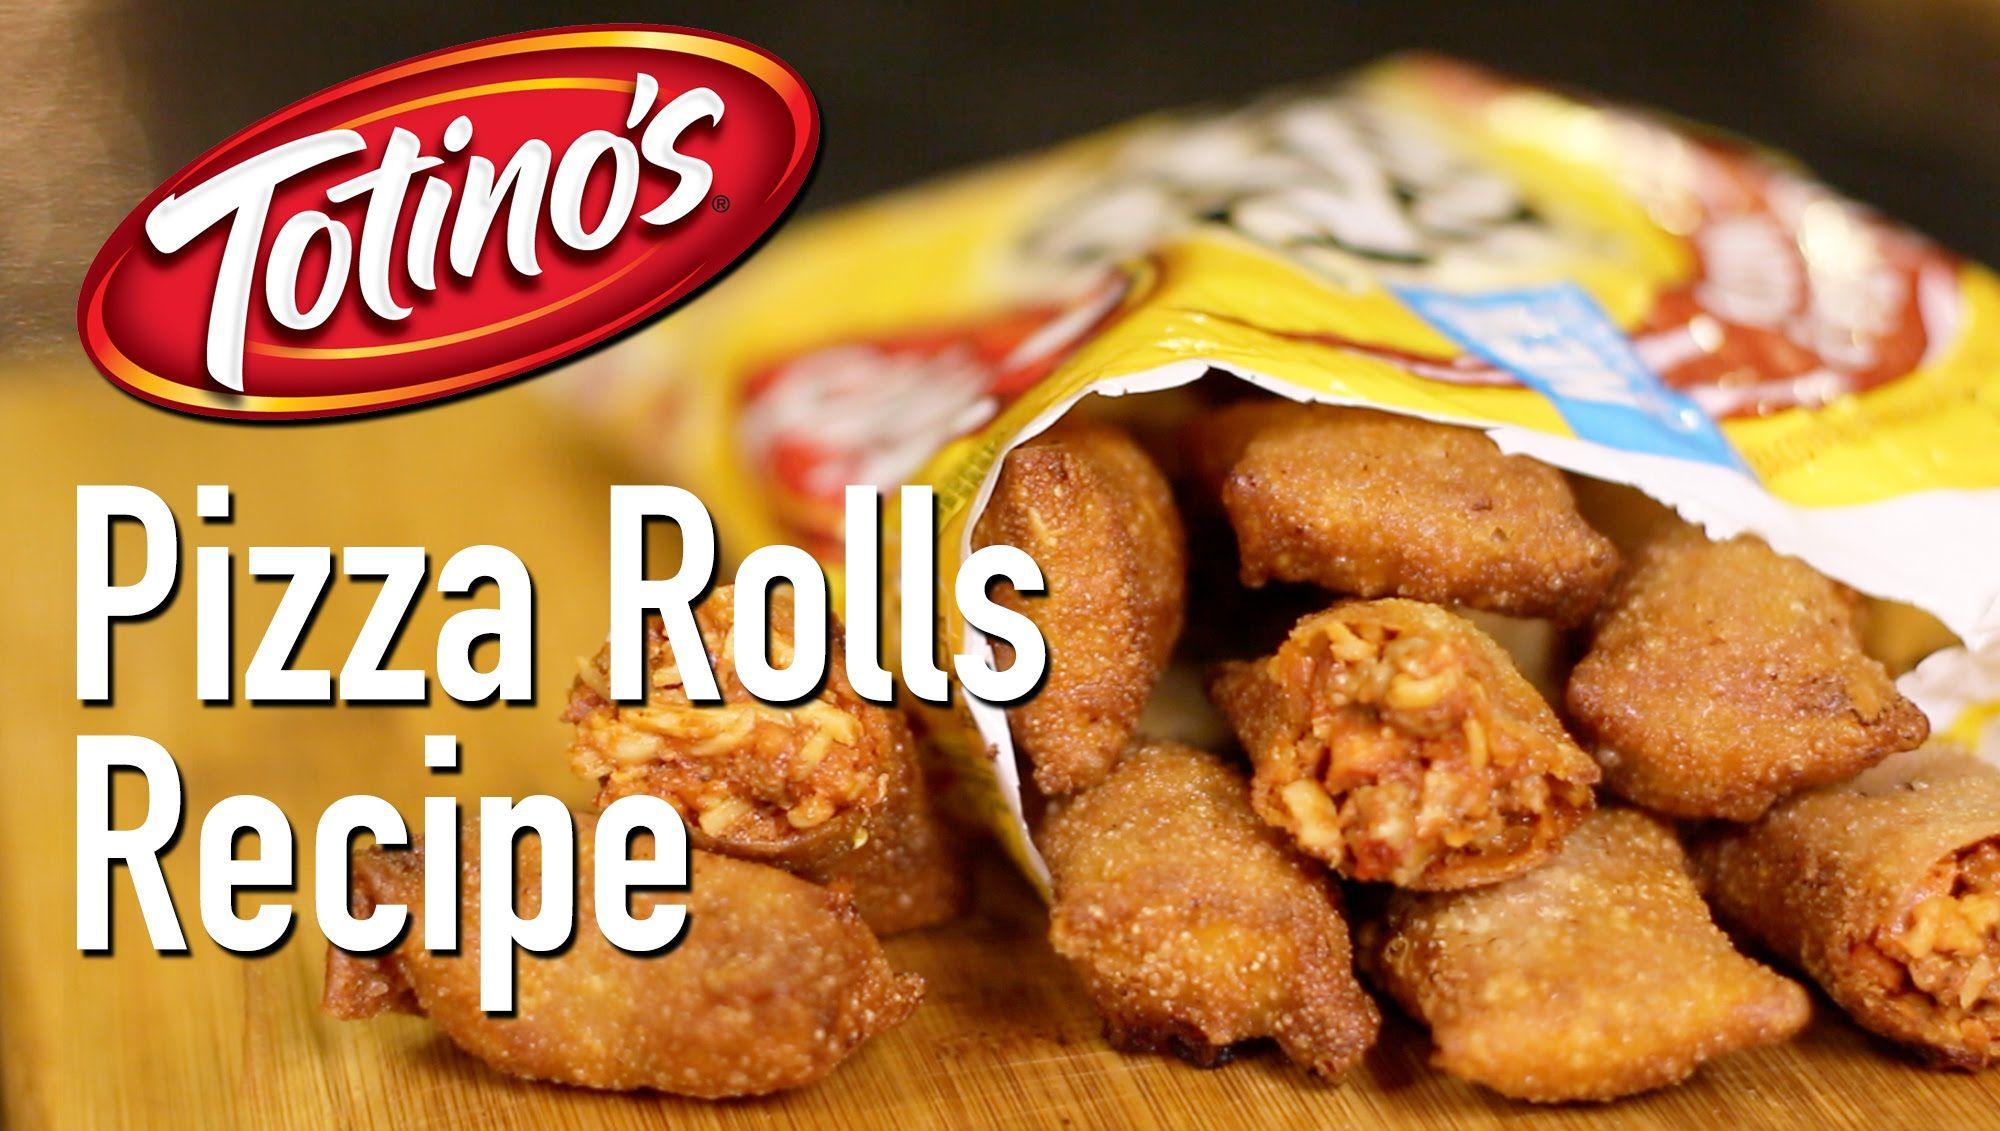 if you haven't had a totino's pizza roll you're missing